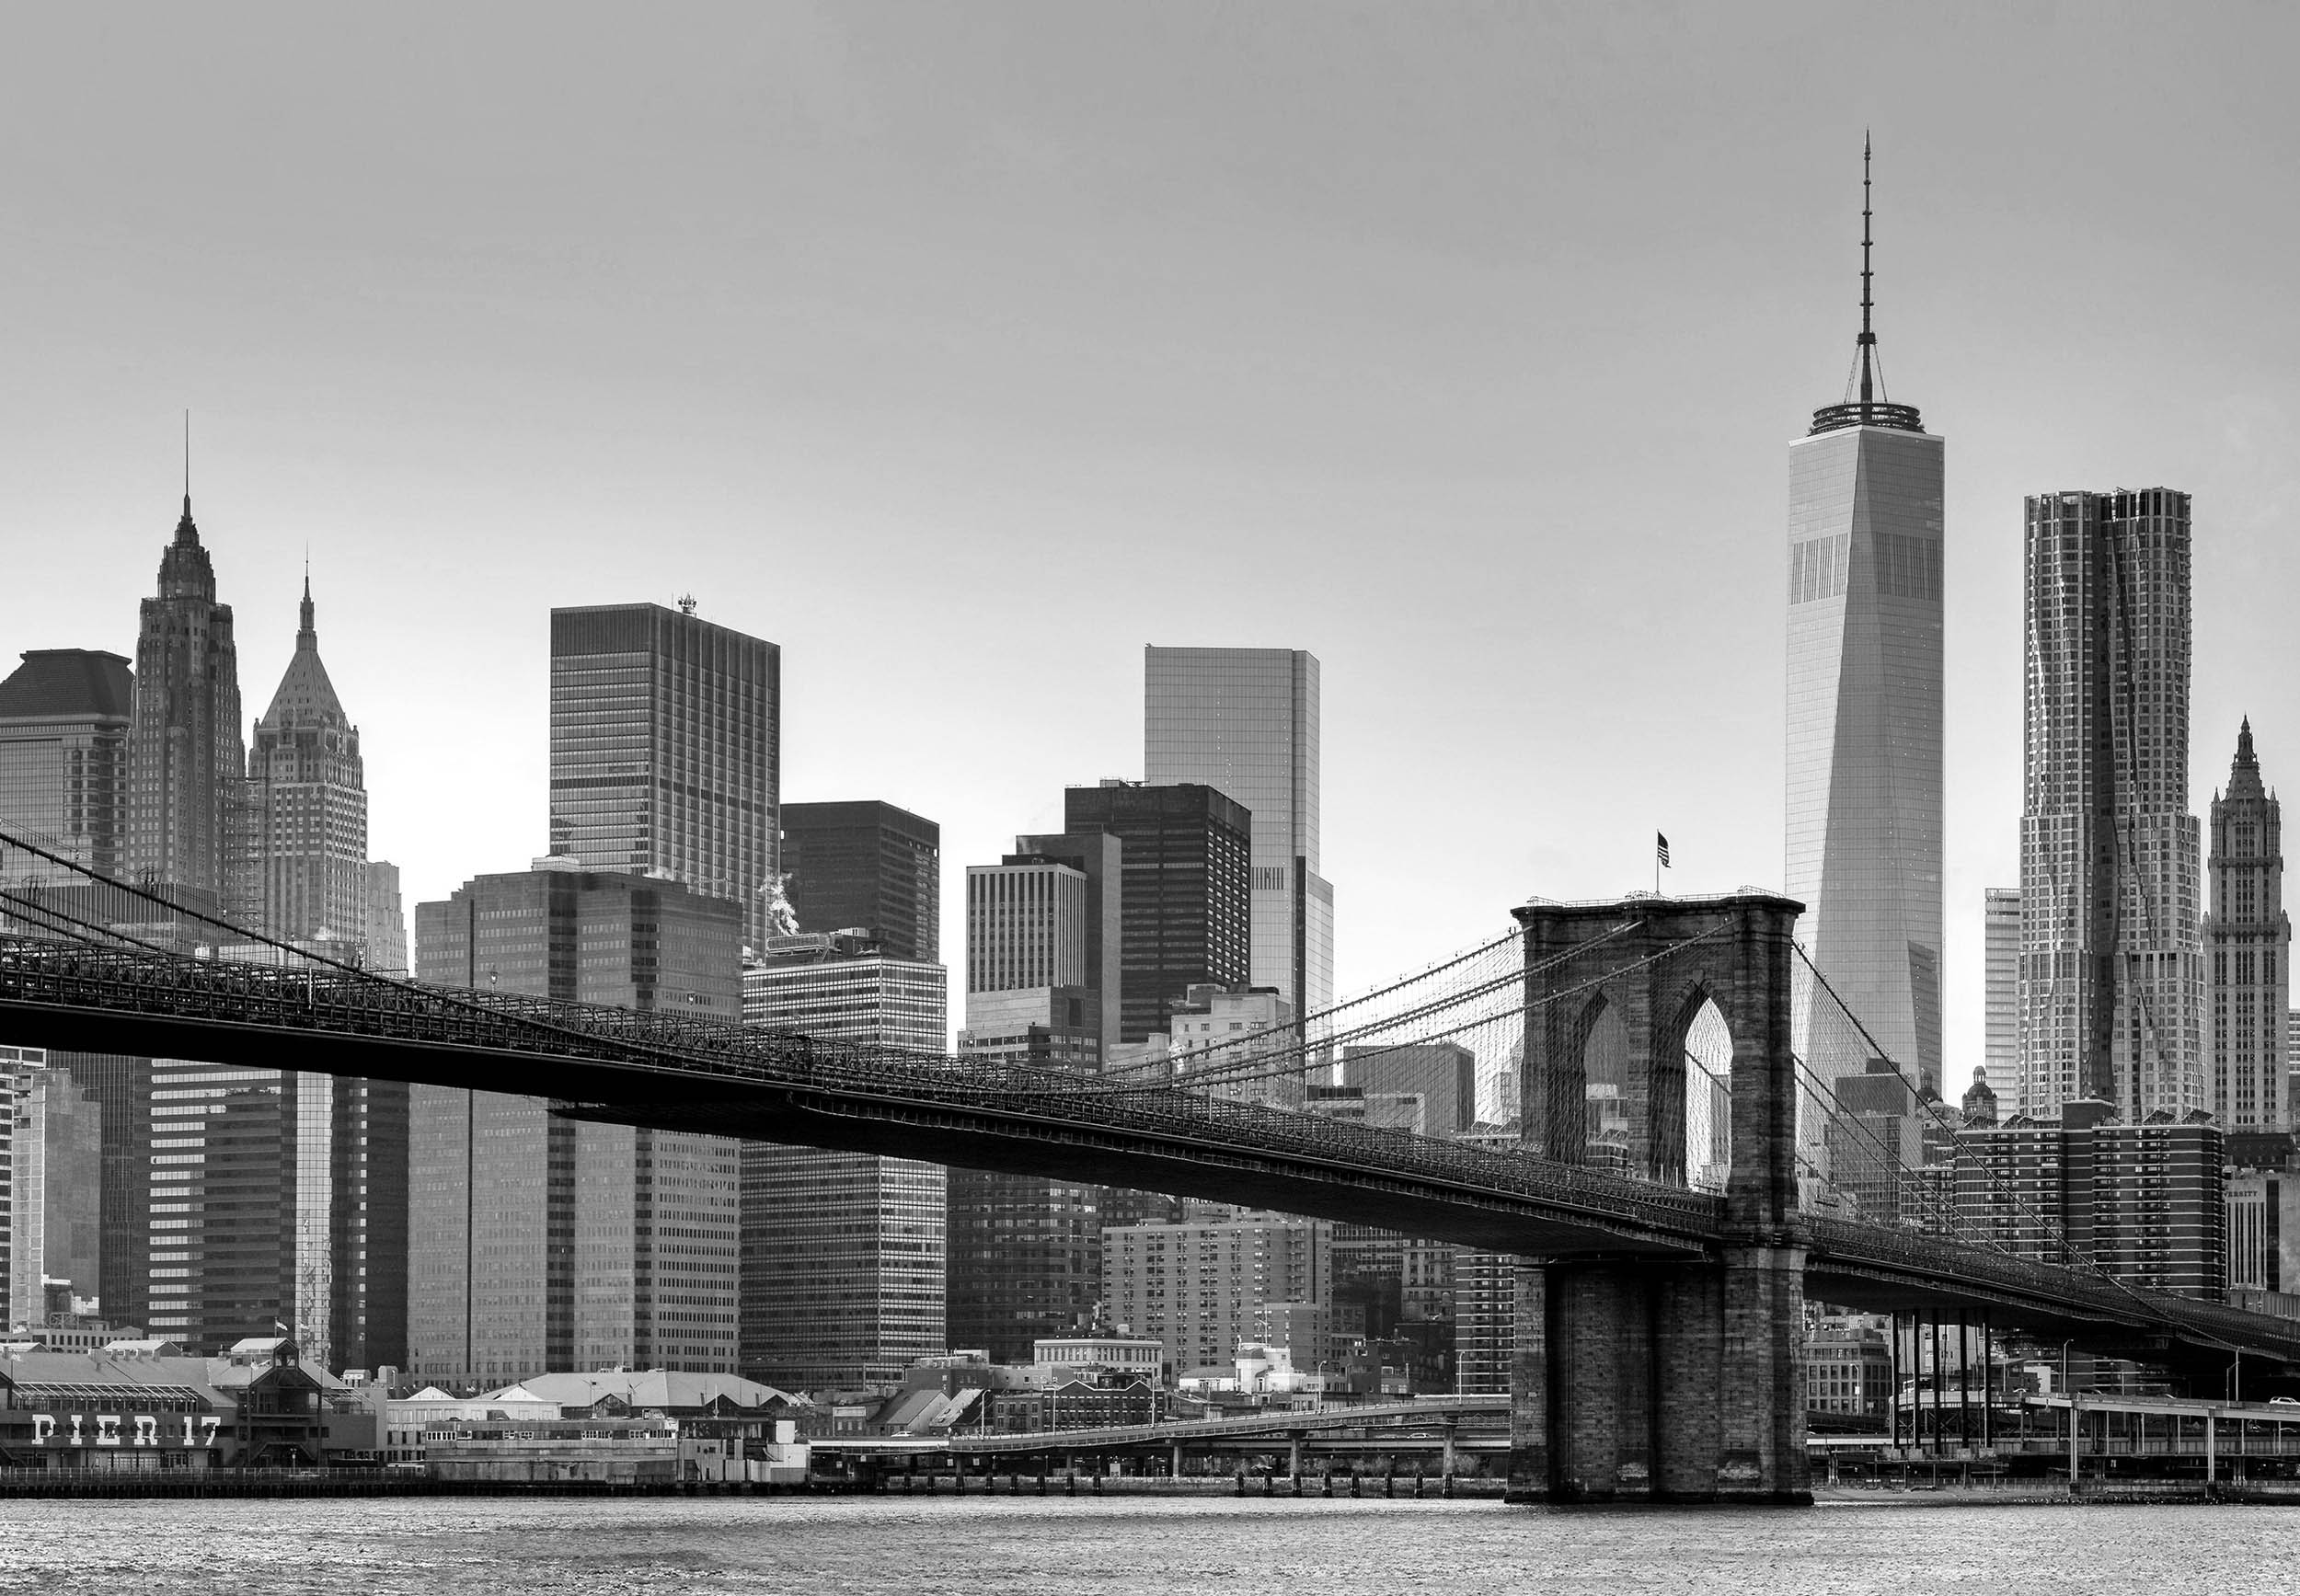 Fototapete new york 366 x 254 cm brooklyn bridge for Black and white new york mural wallpaper